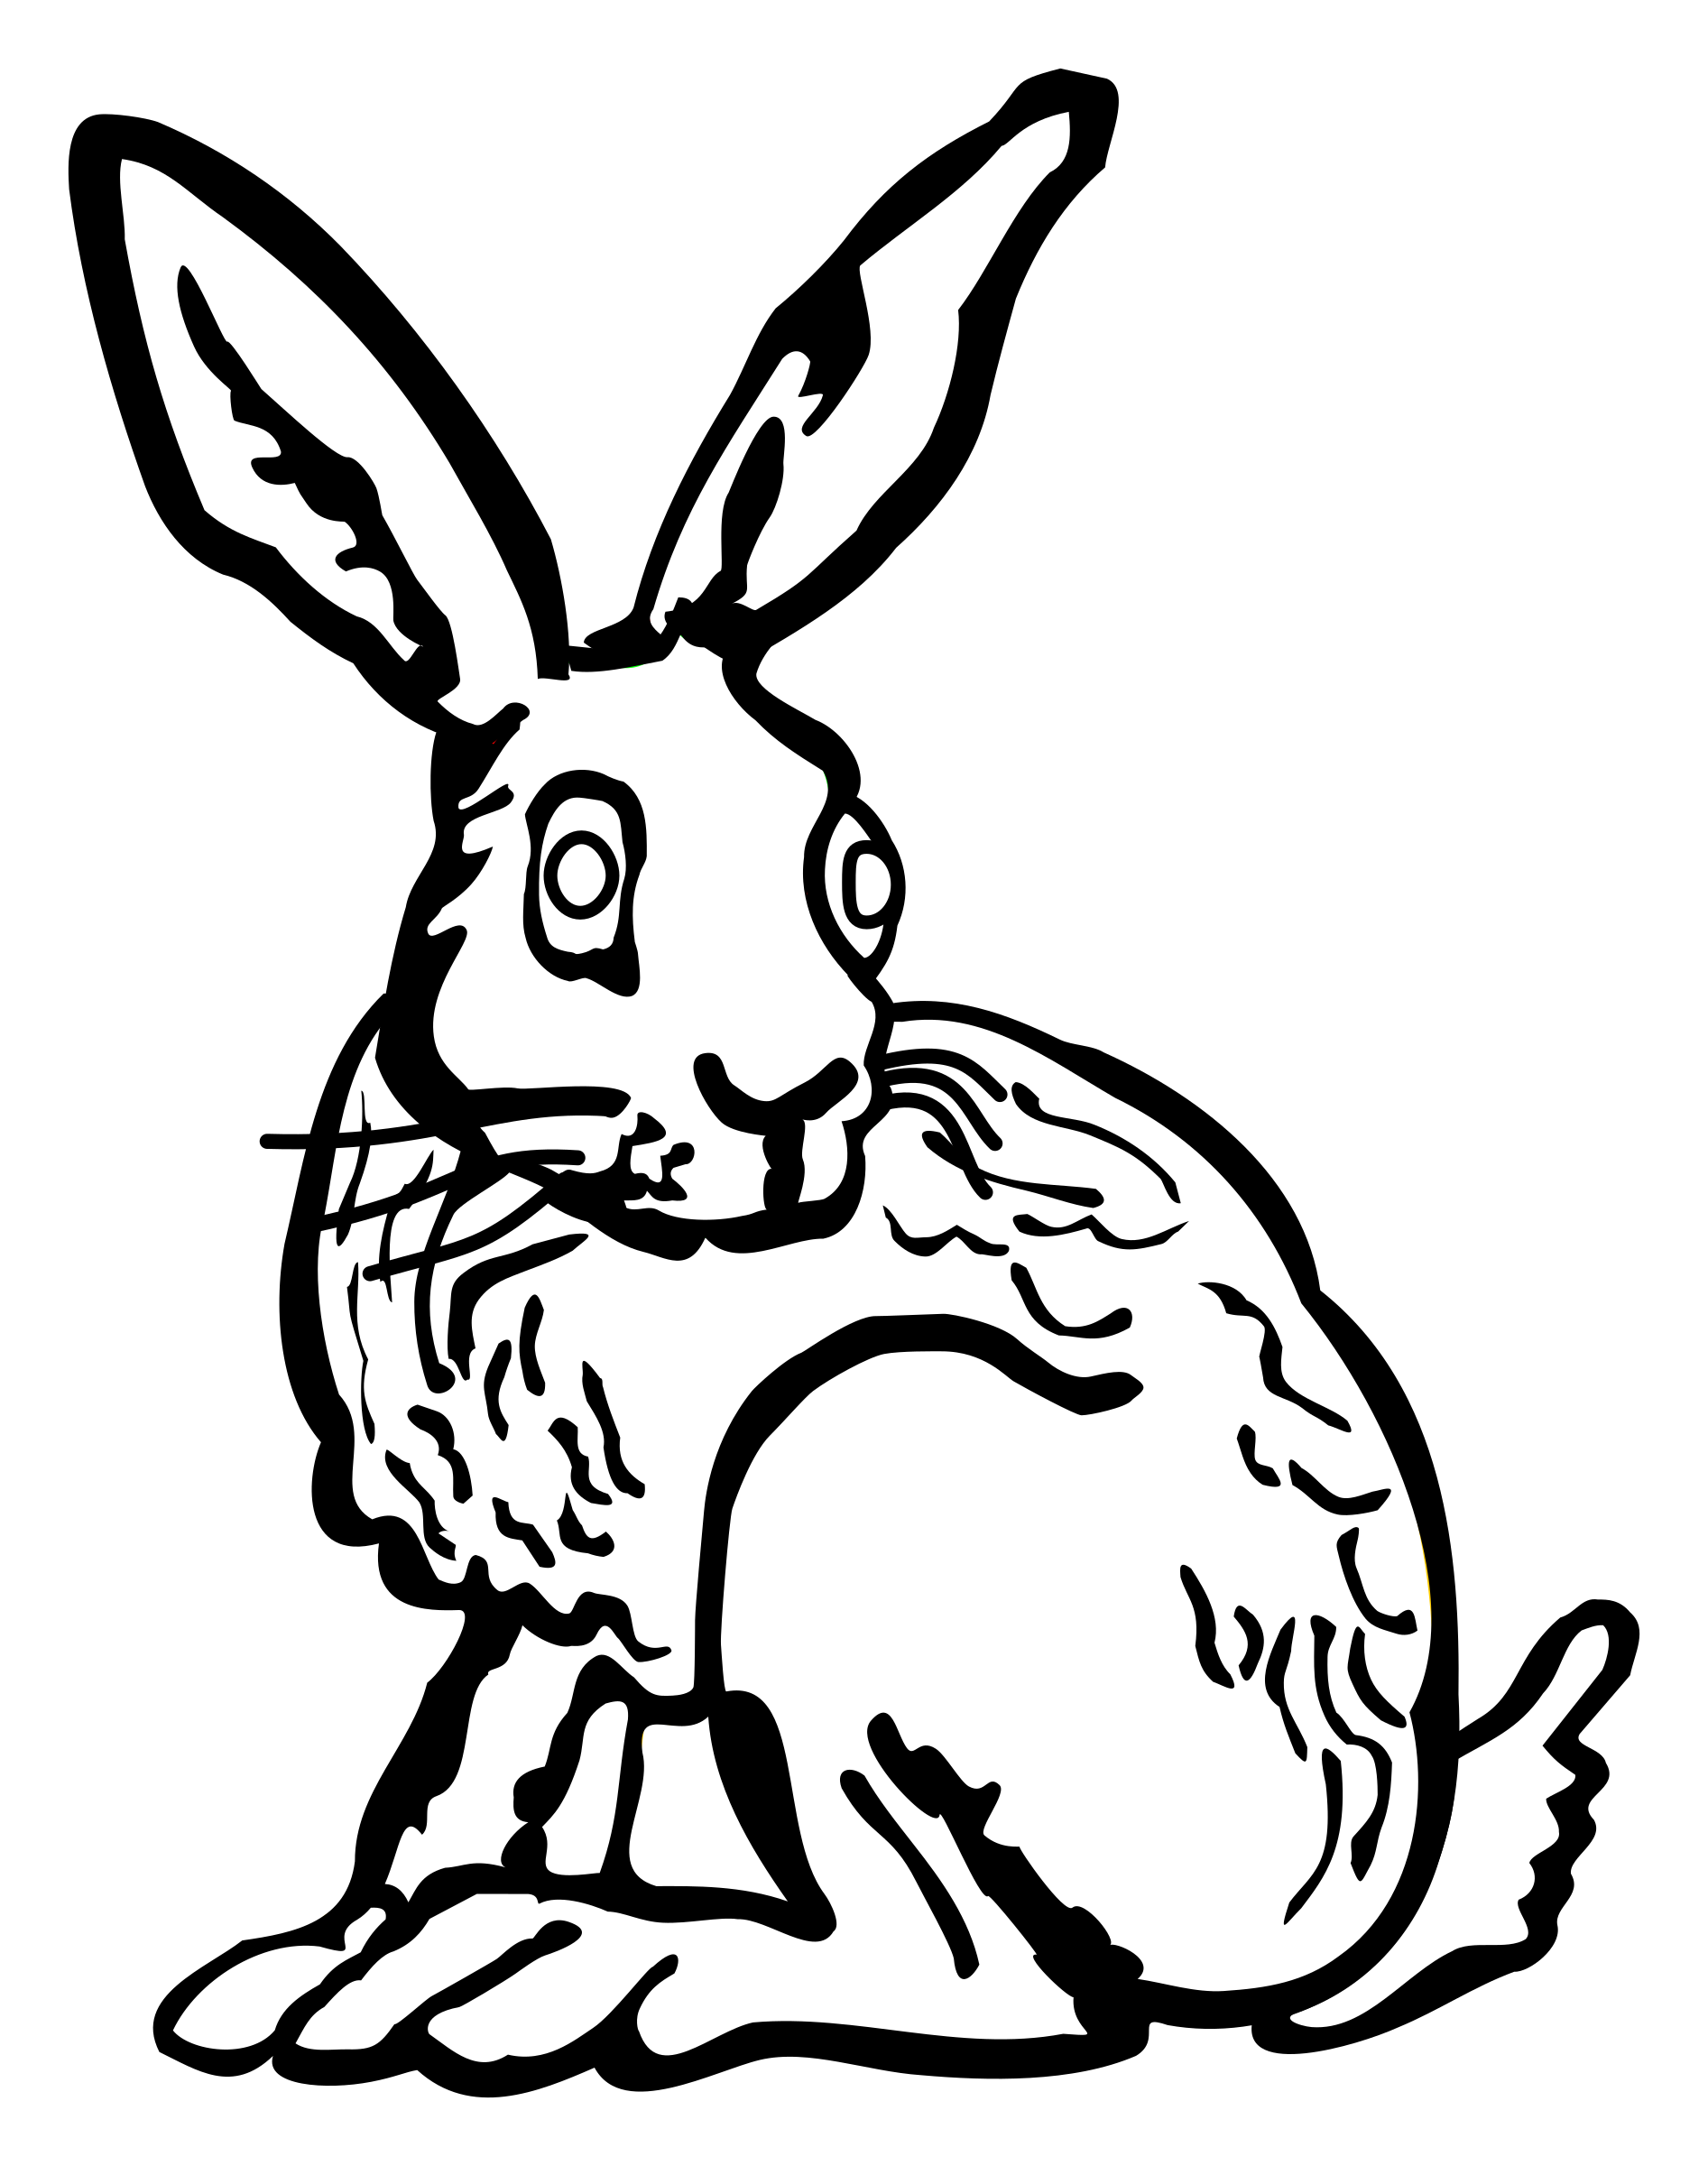 Lineart icons png free. Race clipart hare and tortoise